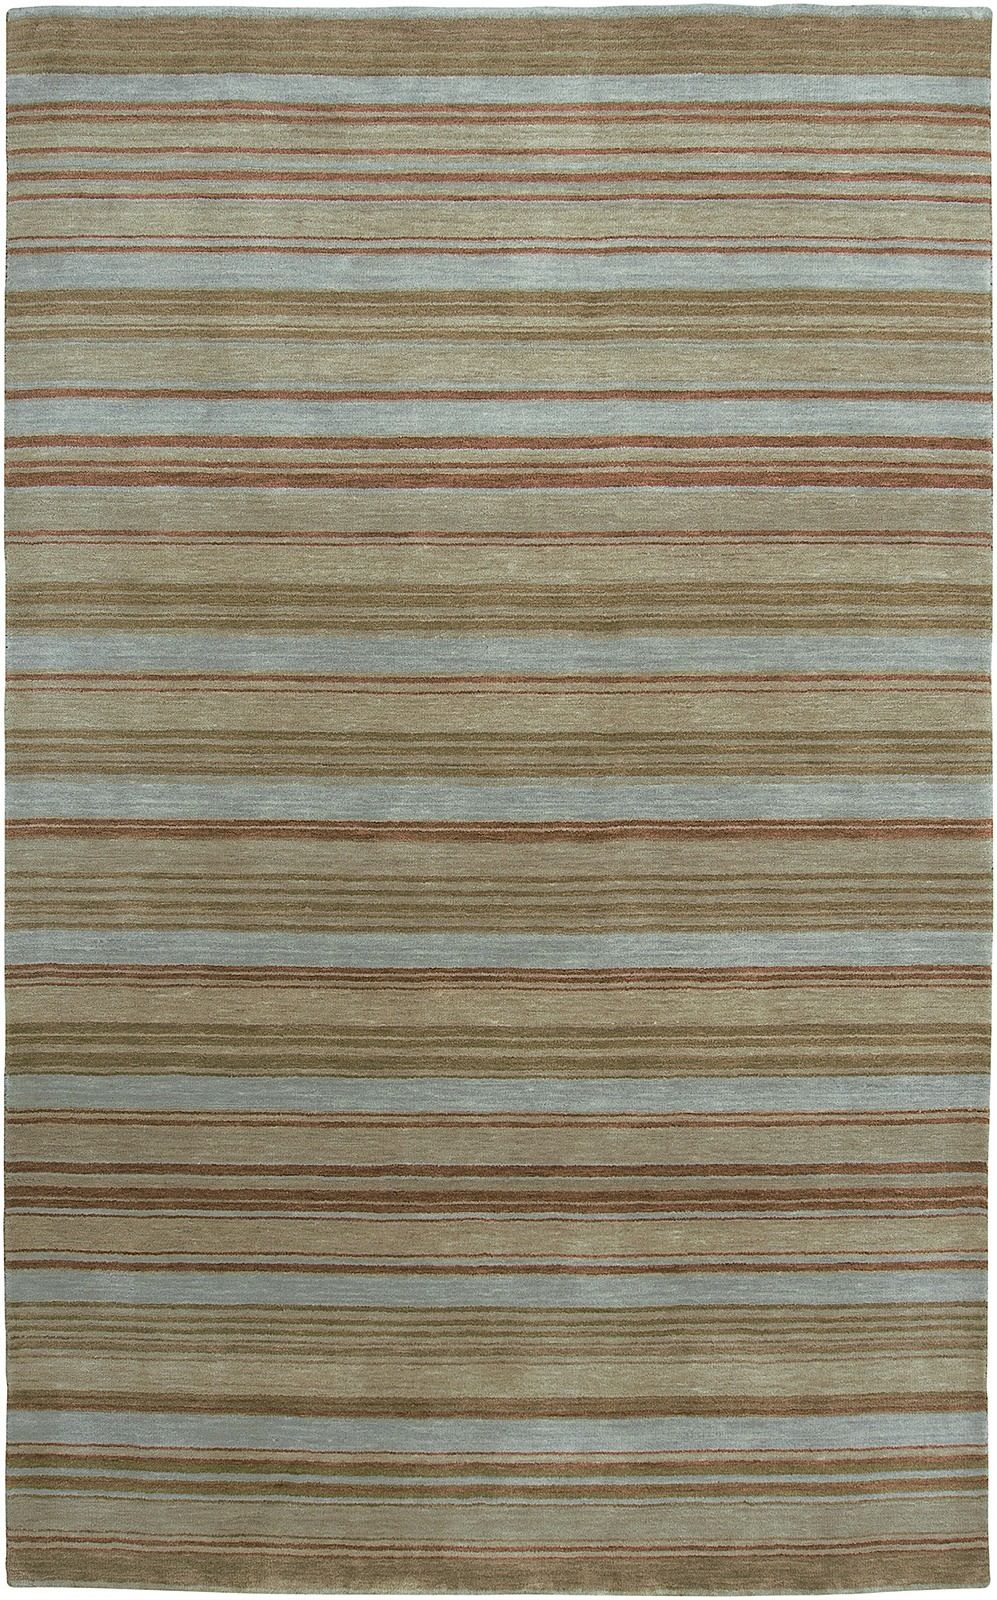 amer archipelago contemporary area rug collection